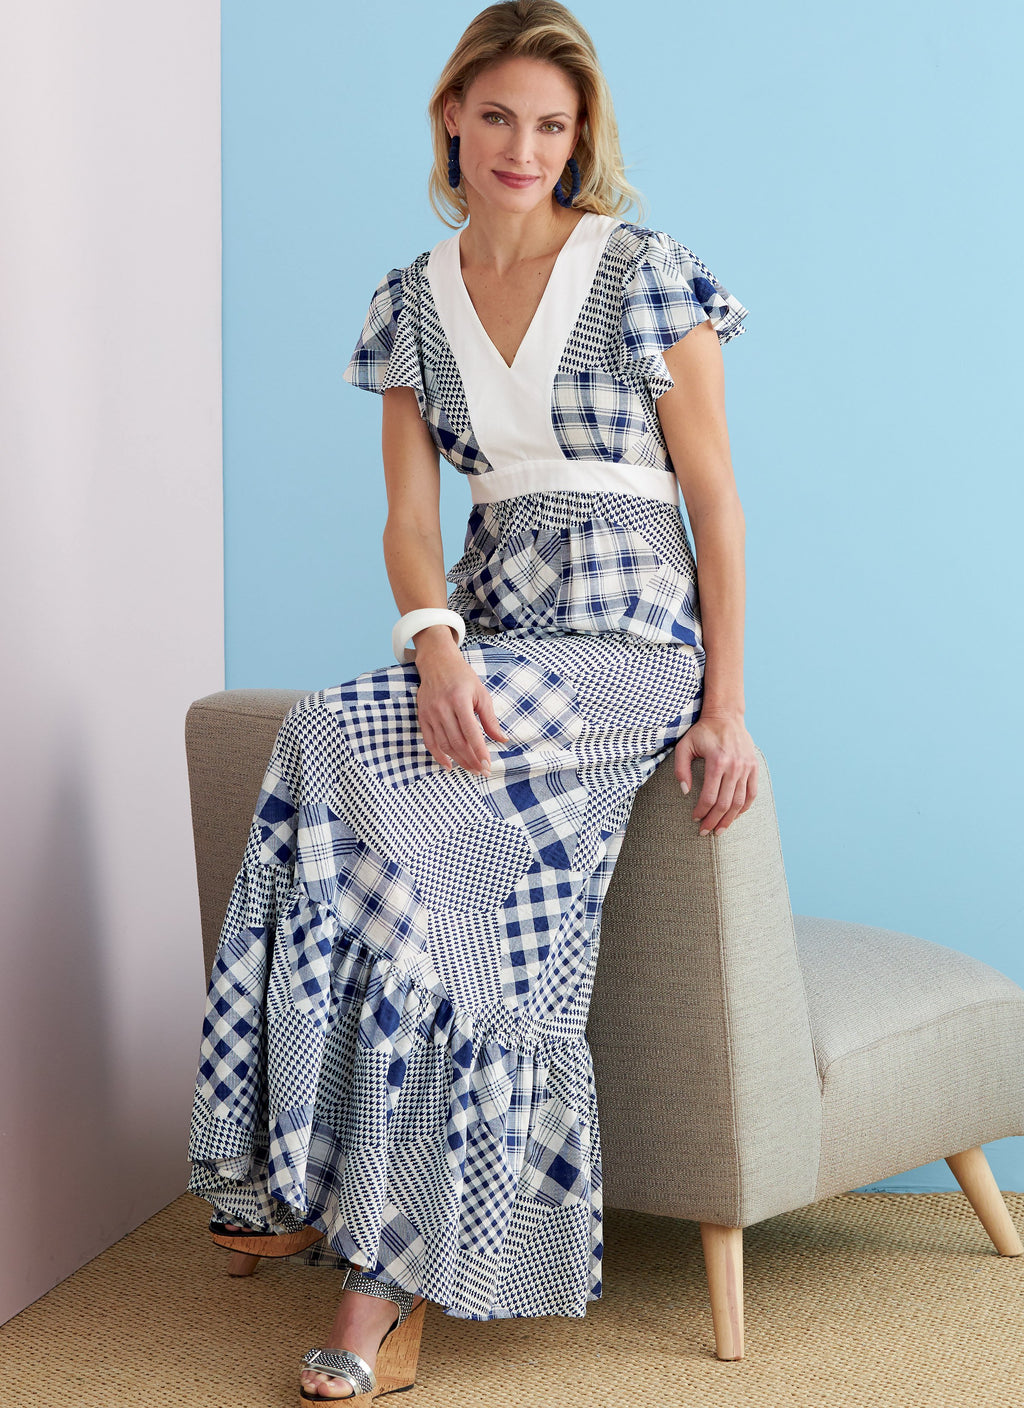 Butterick Sewing Pattern 6728 Misses' Dresses